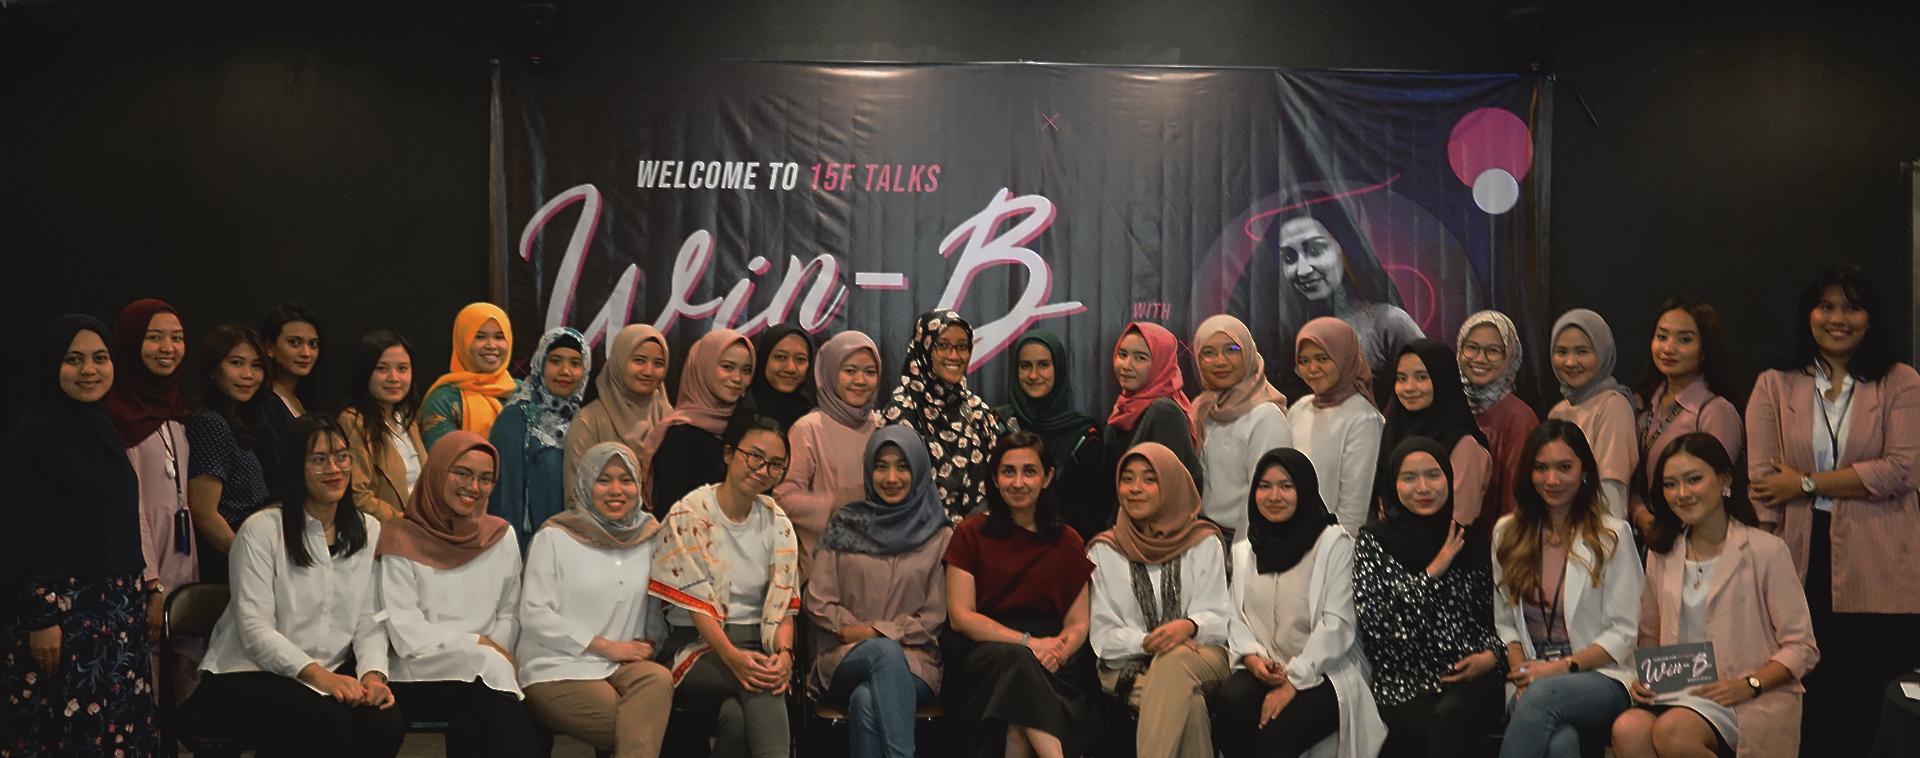 15FTalks: Woman in Business bersama Nina Mora...